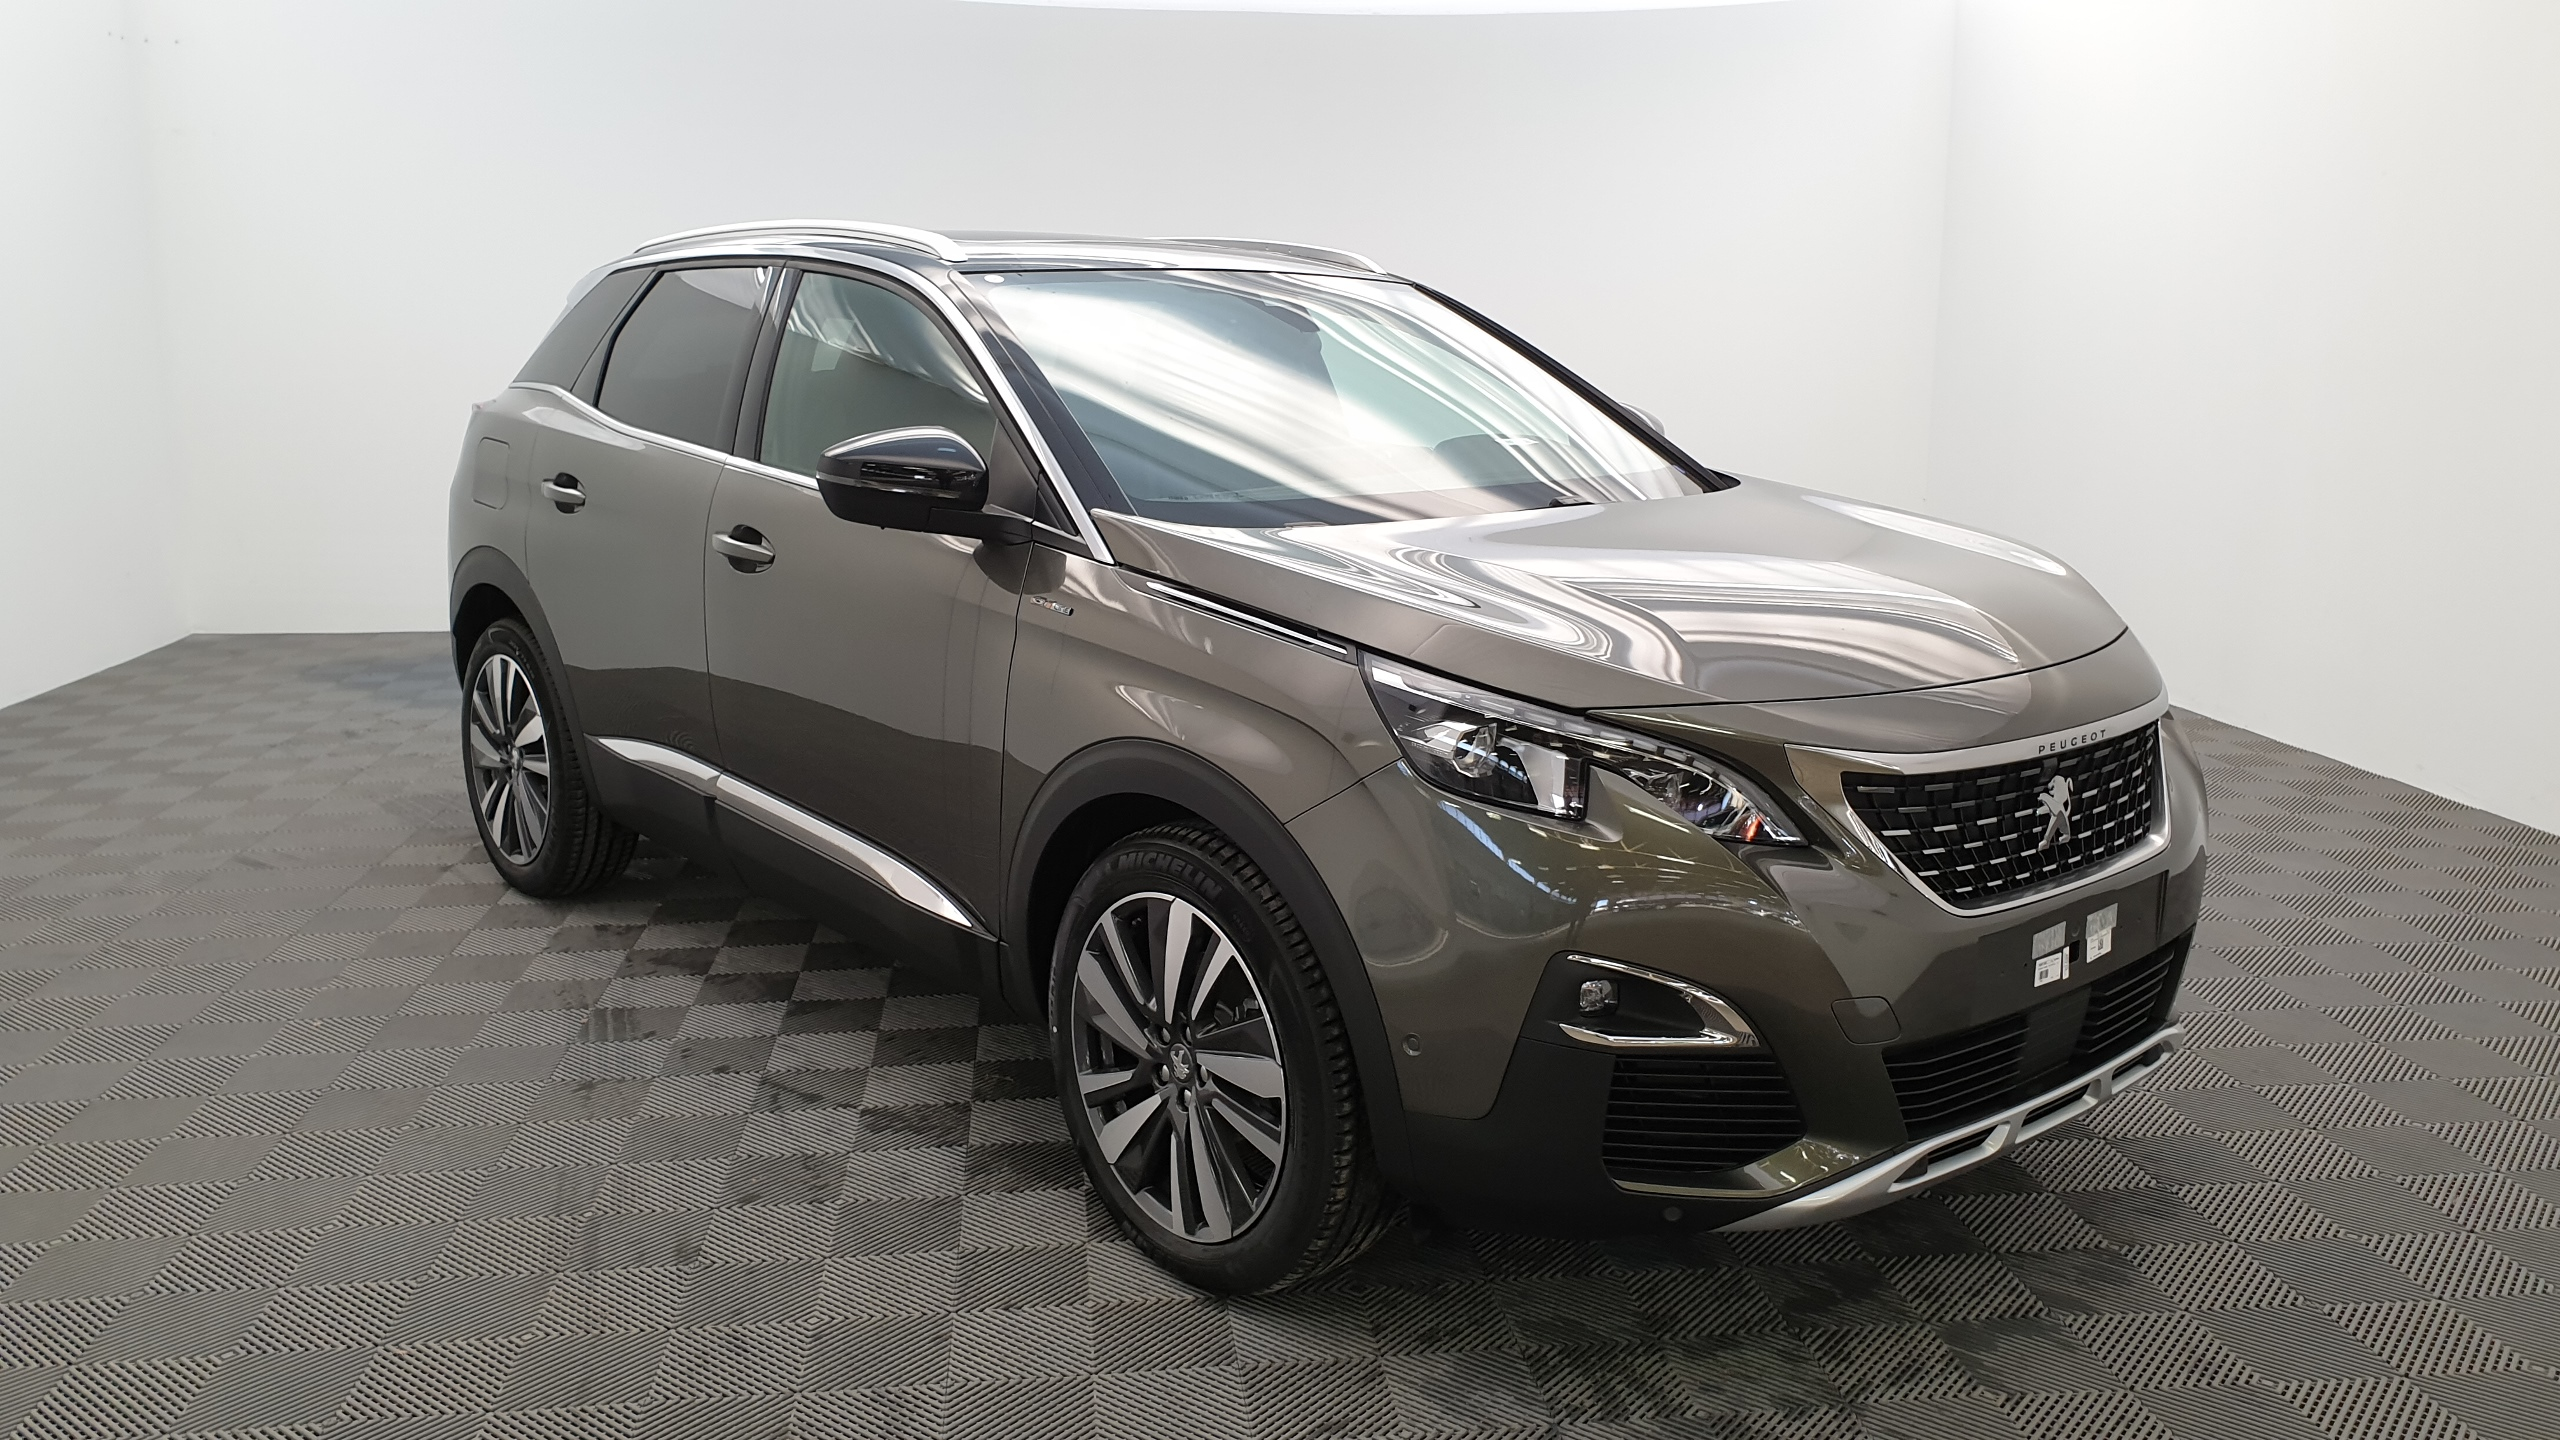 Photo PEUGEOT 3008 1.2 PURETECH 130CV GT LINE + PACK CITY 2